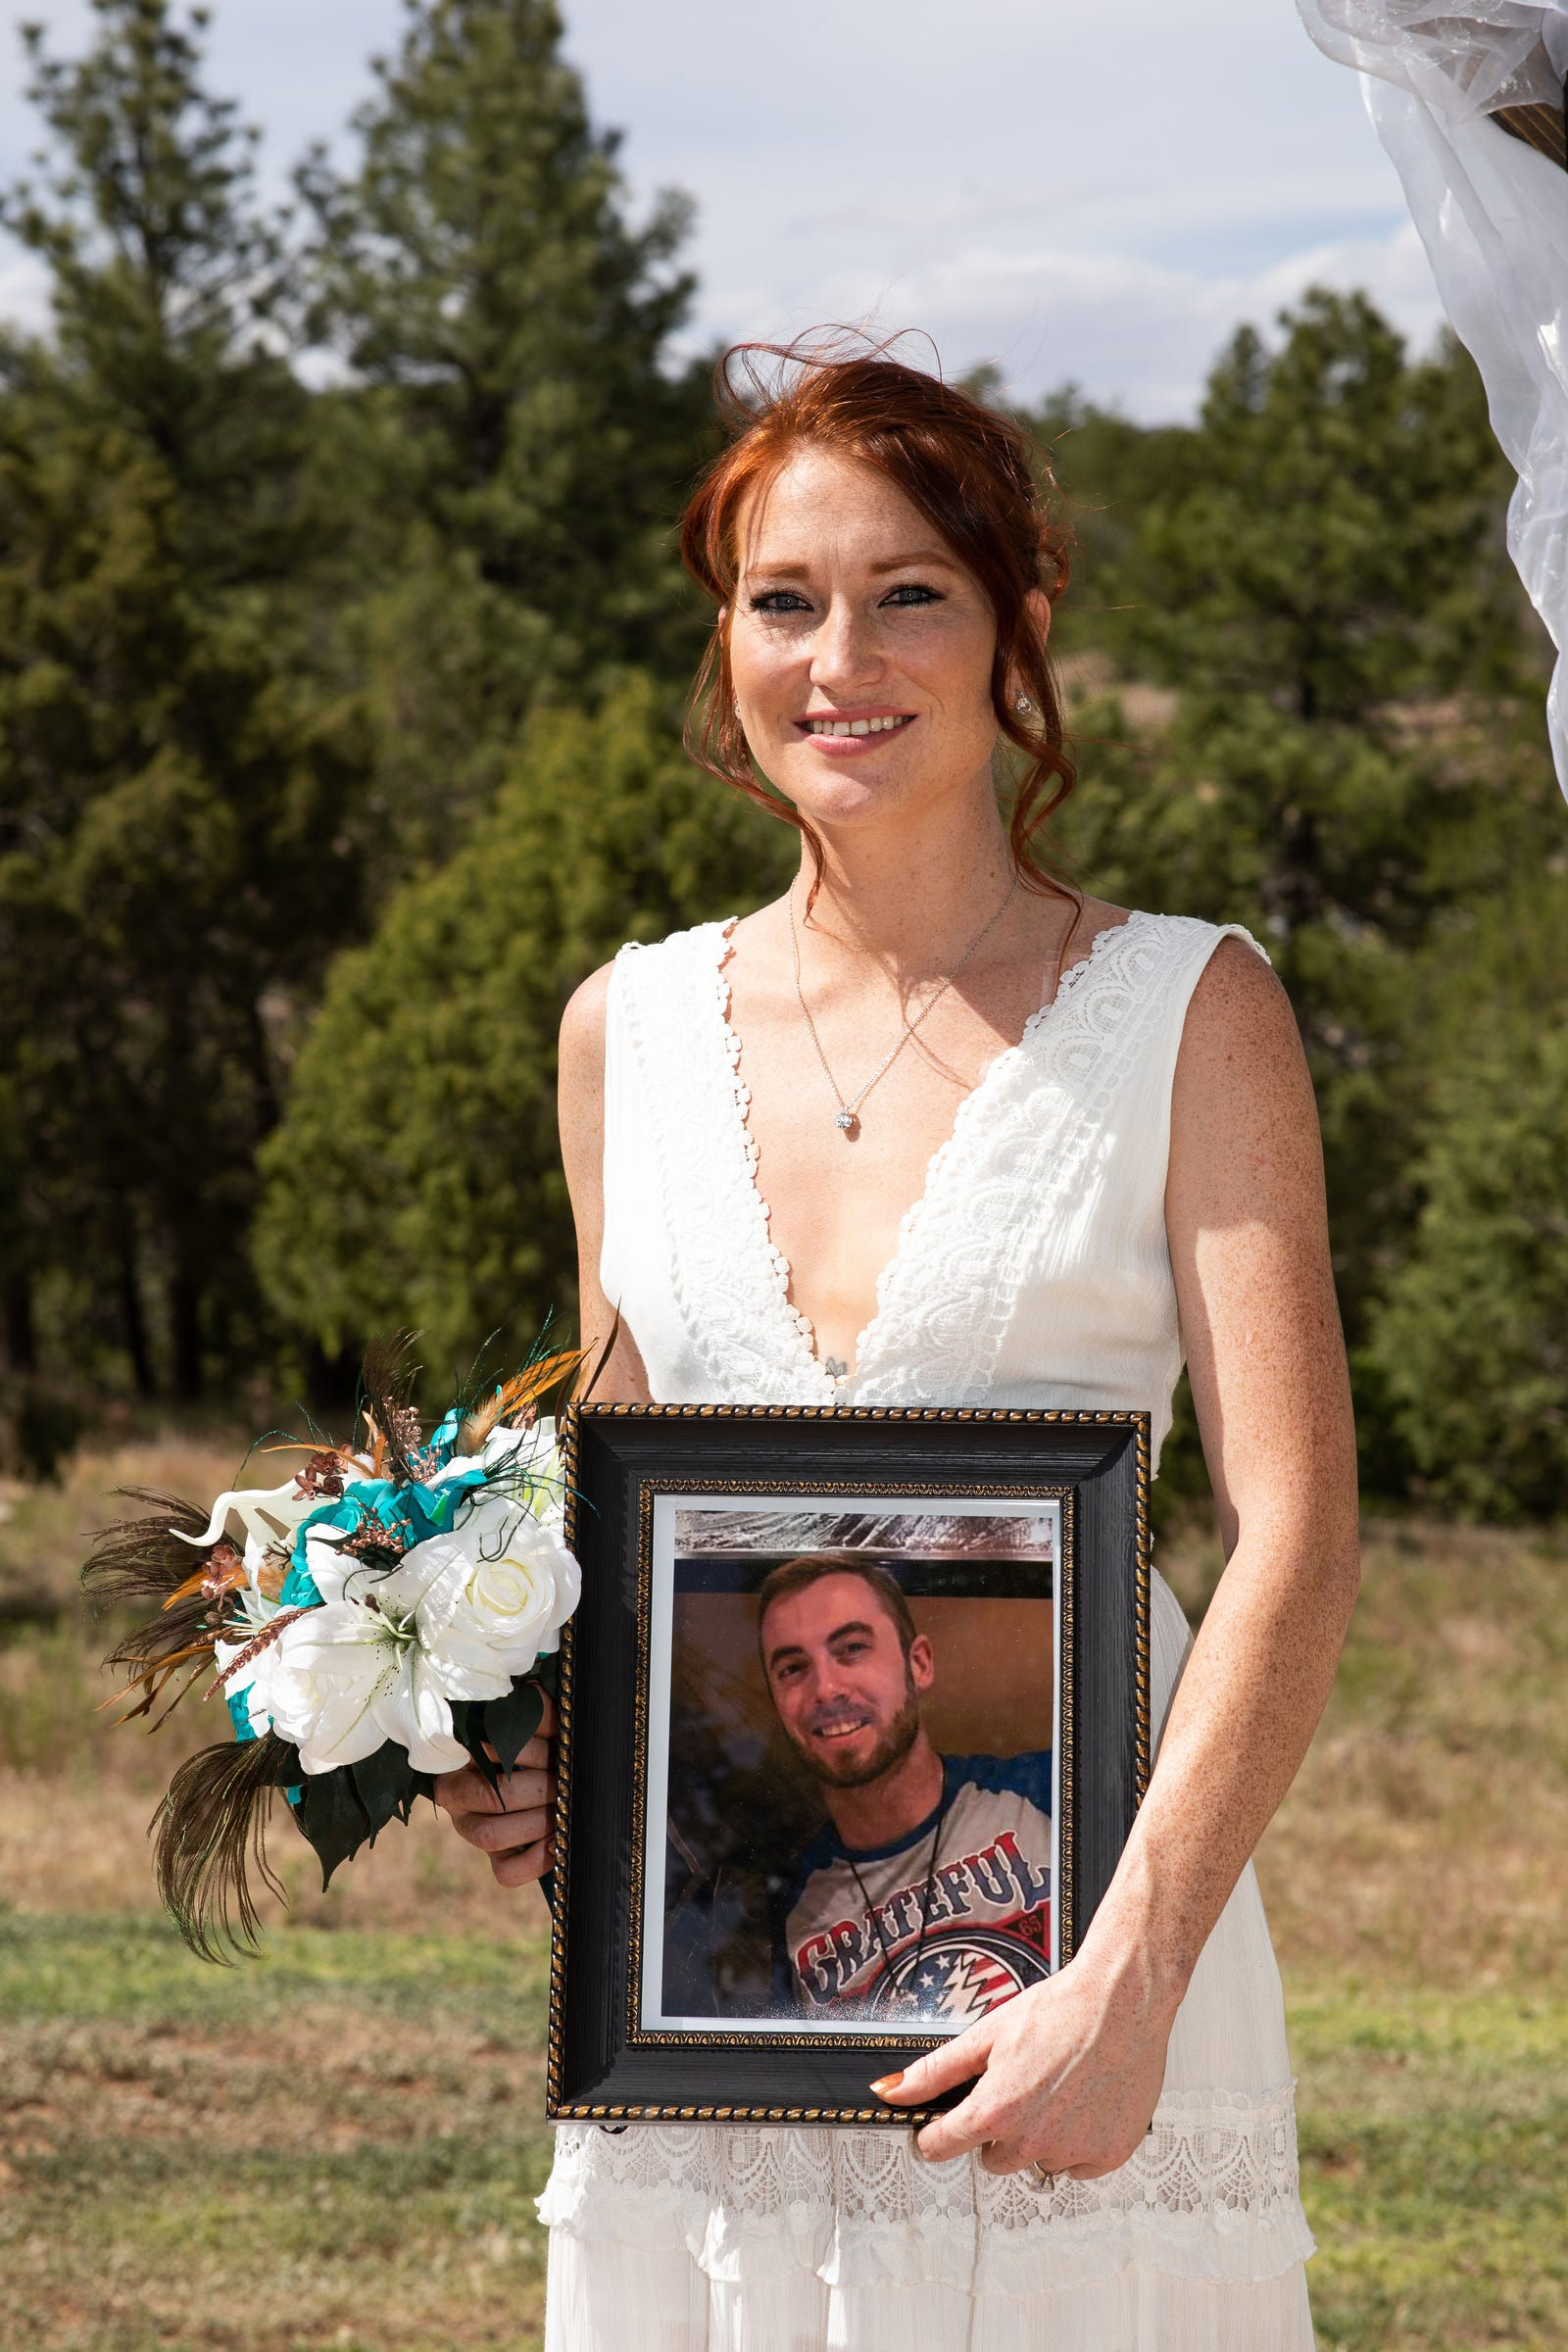 Austin Burnett's sister Meagan Angelino holds a photo of him on her wedding day May 24, 2020 in Tijeras, New Mexico. Burnett died a month before her wedding in his Wyandotte apartment on April 28, 2020 of an overdose.